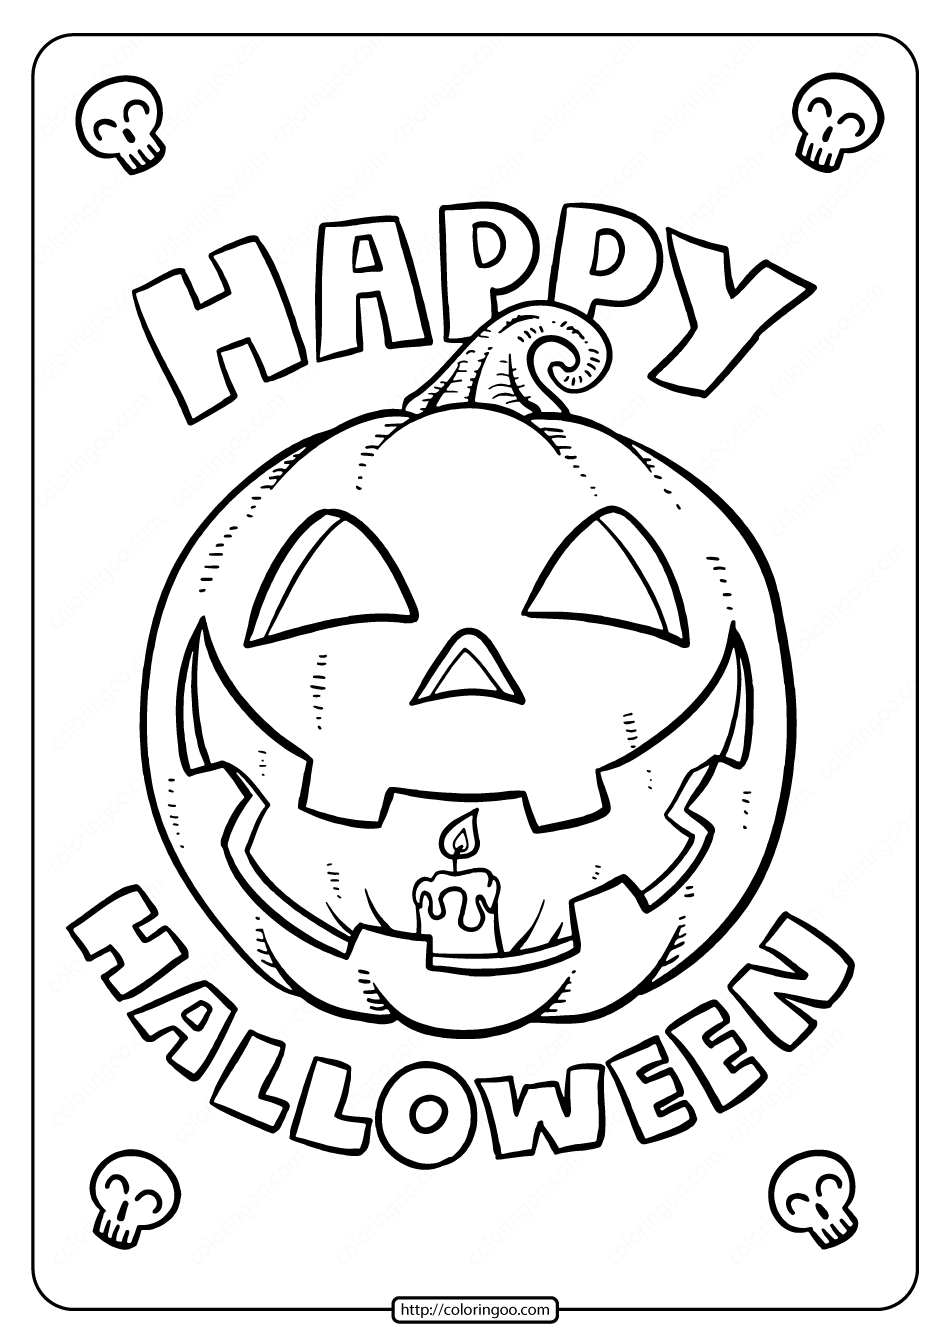 Happy Halloween Coloring Pages